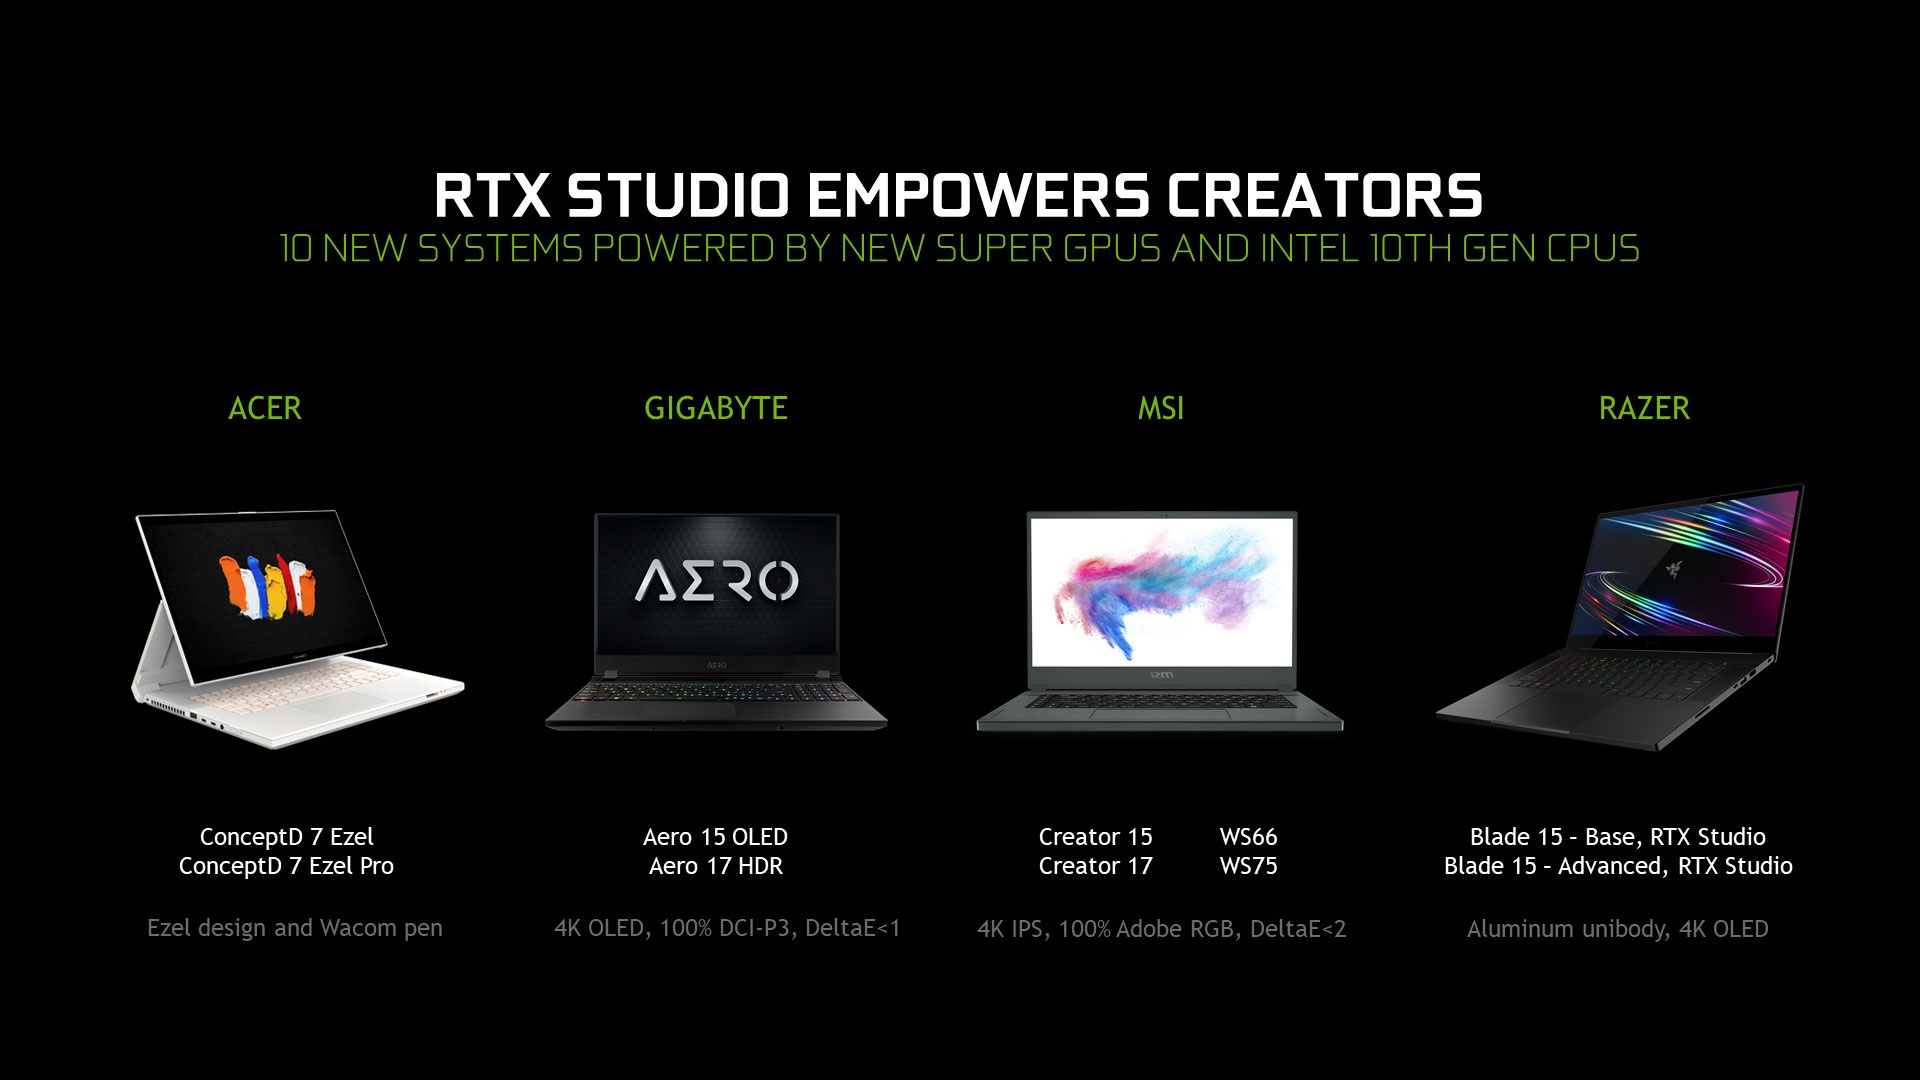 Ten new RTX Studio laptops for creative professionals